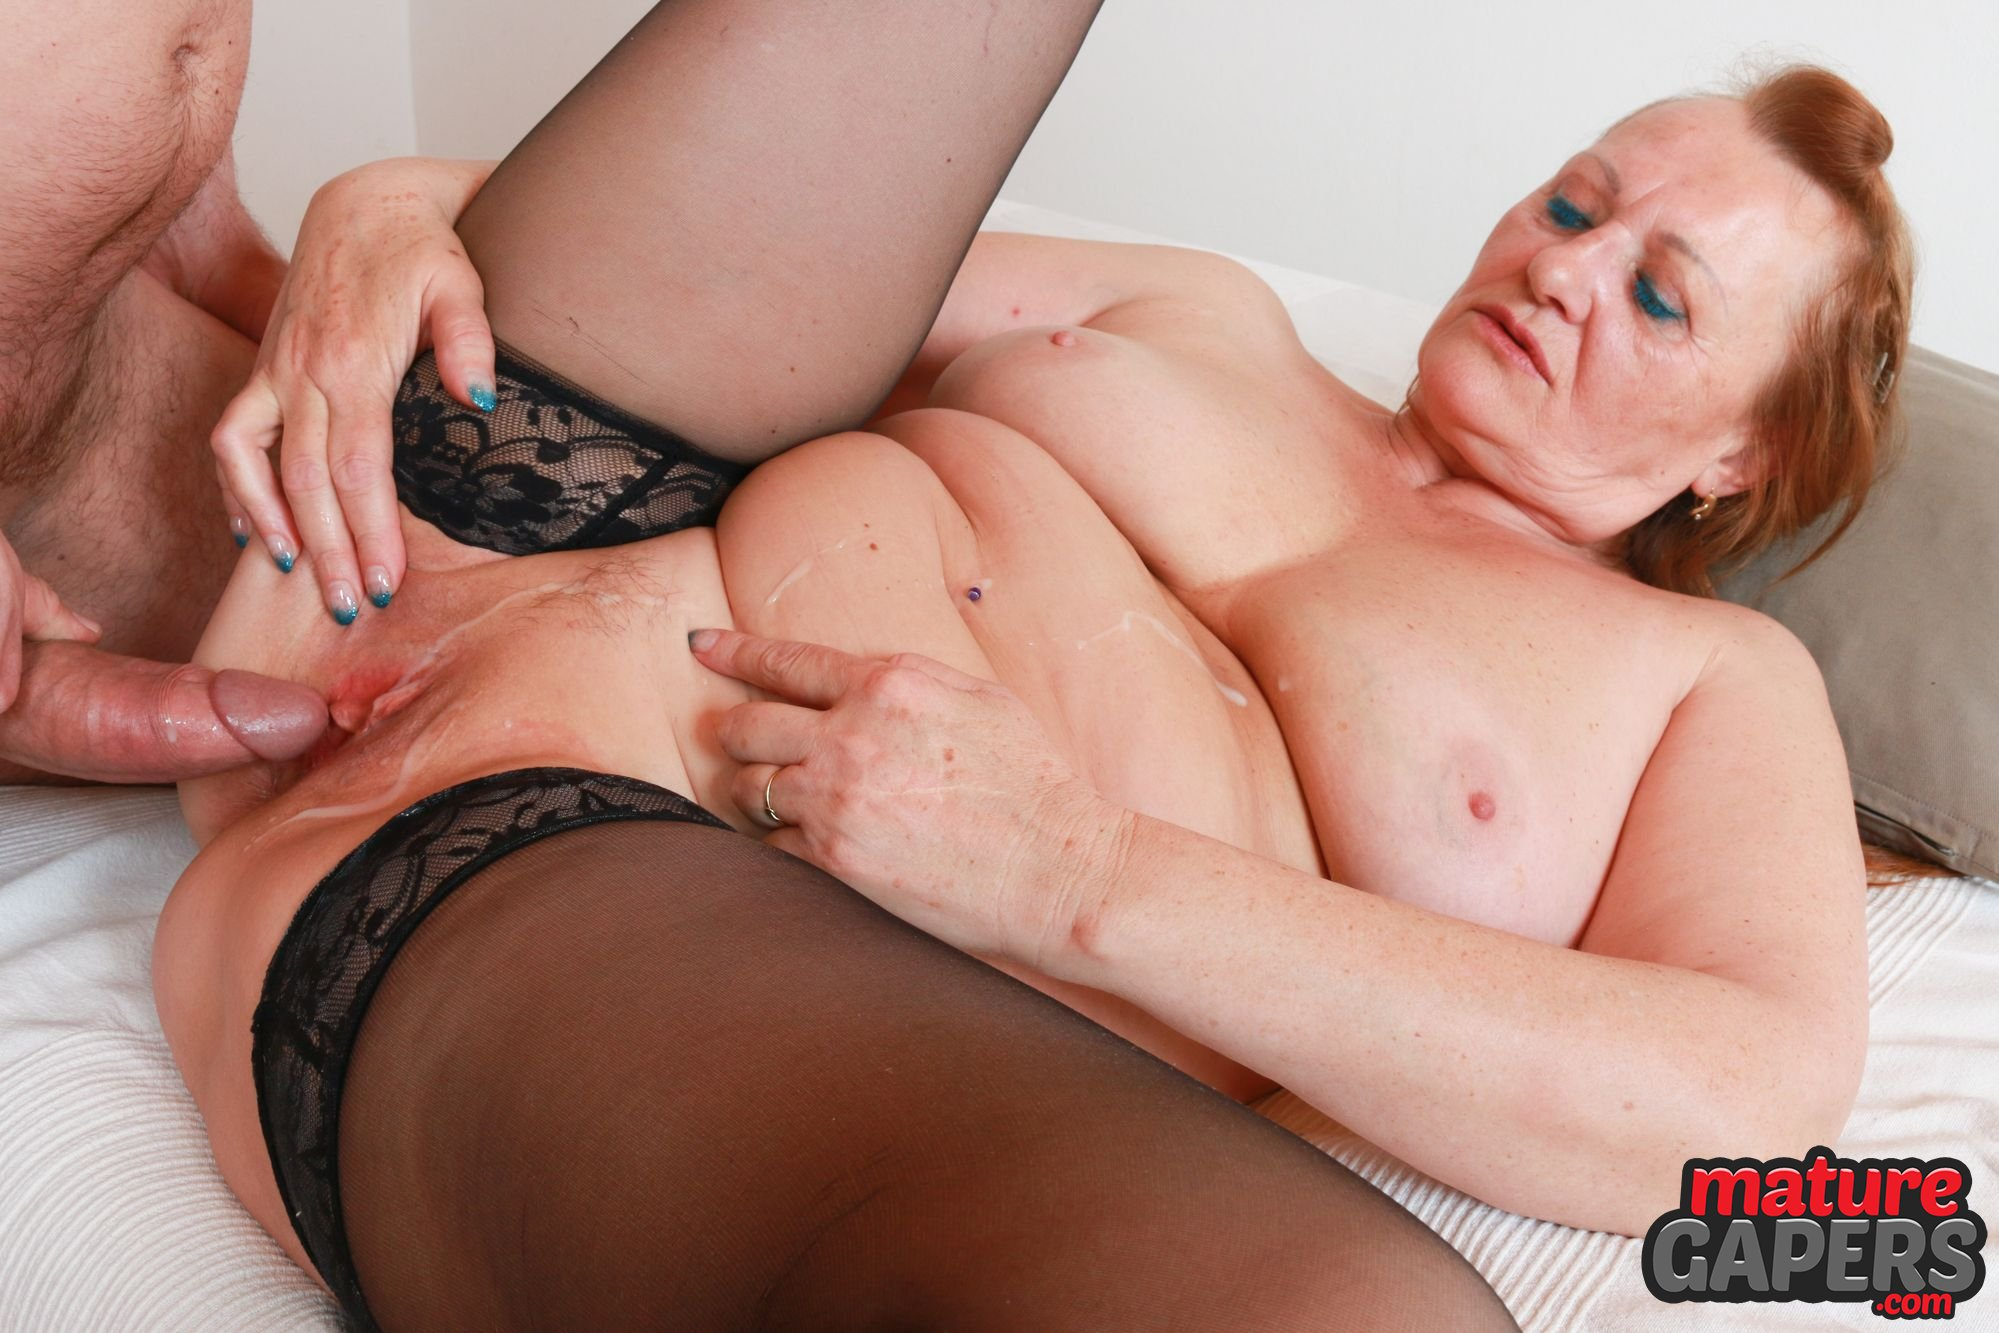 Mature Lady Valerie Mack Gets Her Pussy Gaped And Fucked Hard By Kamil Klein